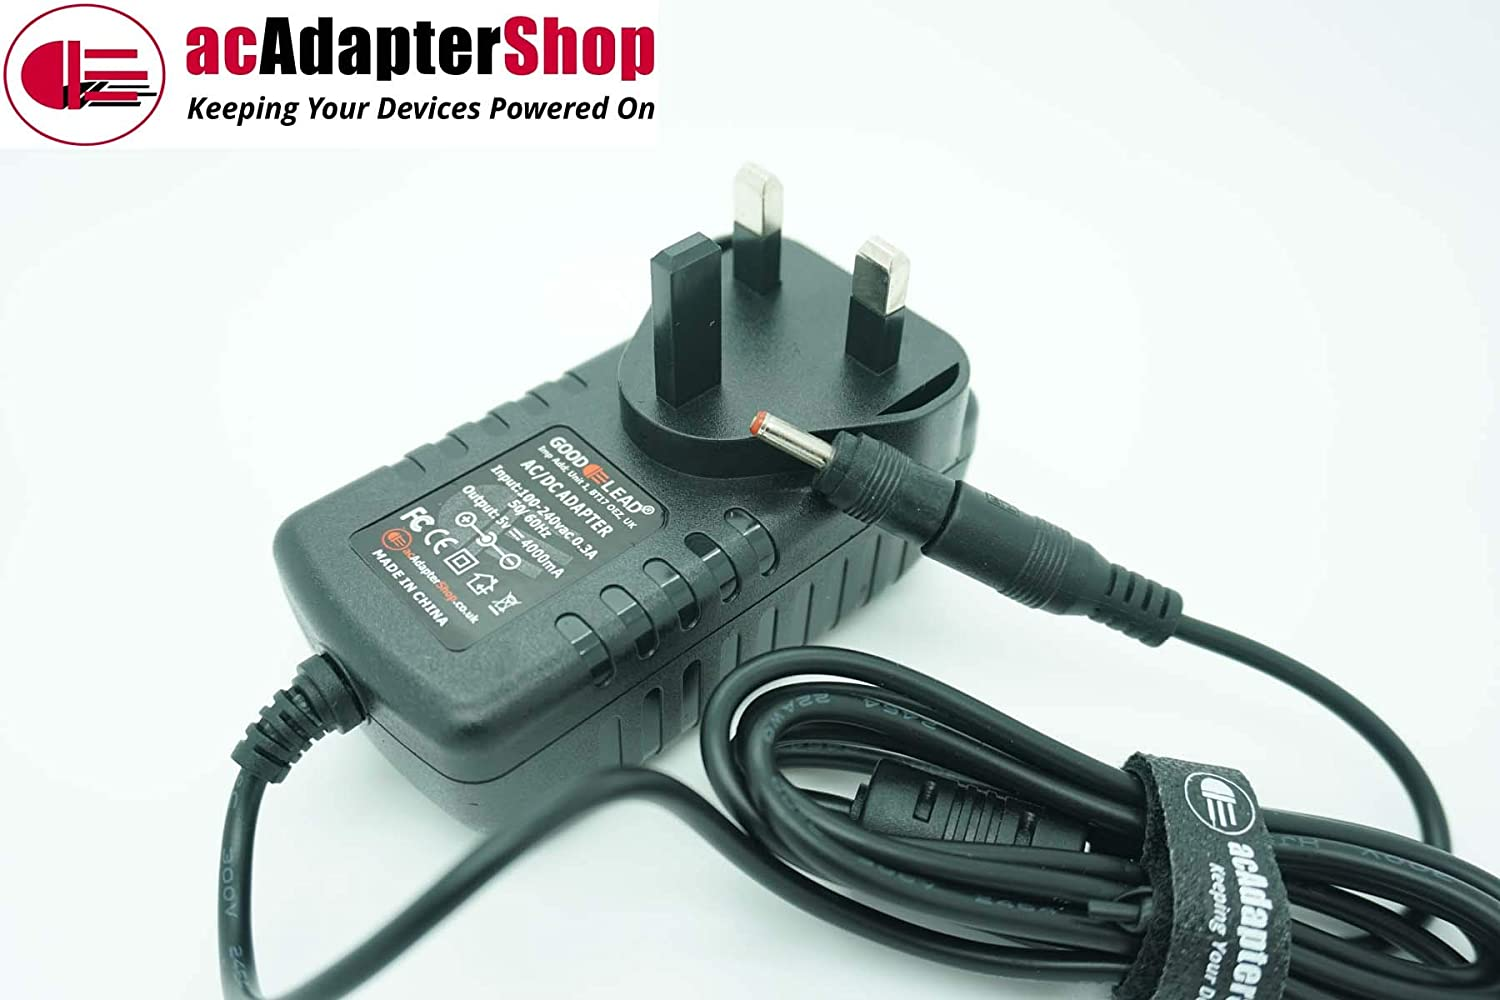 GOOD LEAD Replacement for 5.0V 3.0A AC Adapter fits Fusion 5 Lapbook T90B Laptop